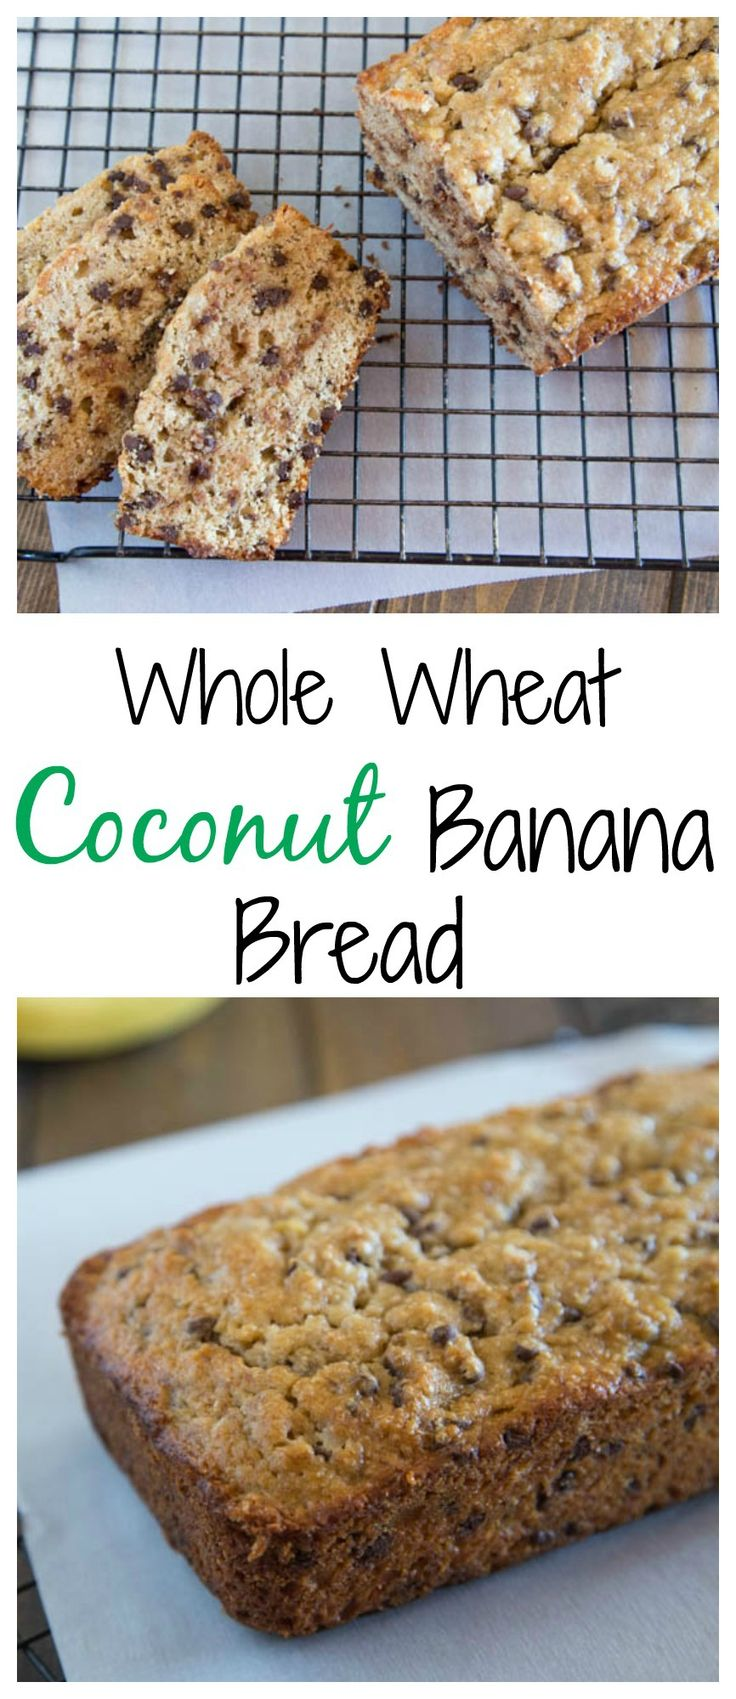 Whole Wheat Coconut Banana Bread - a moist whole wheat banana bread made with coconut oil, shredded coconut, and chocolate chips.